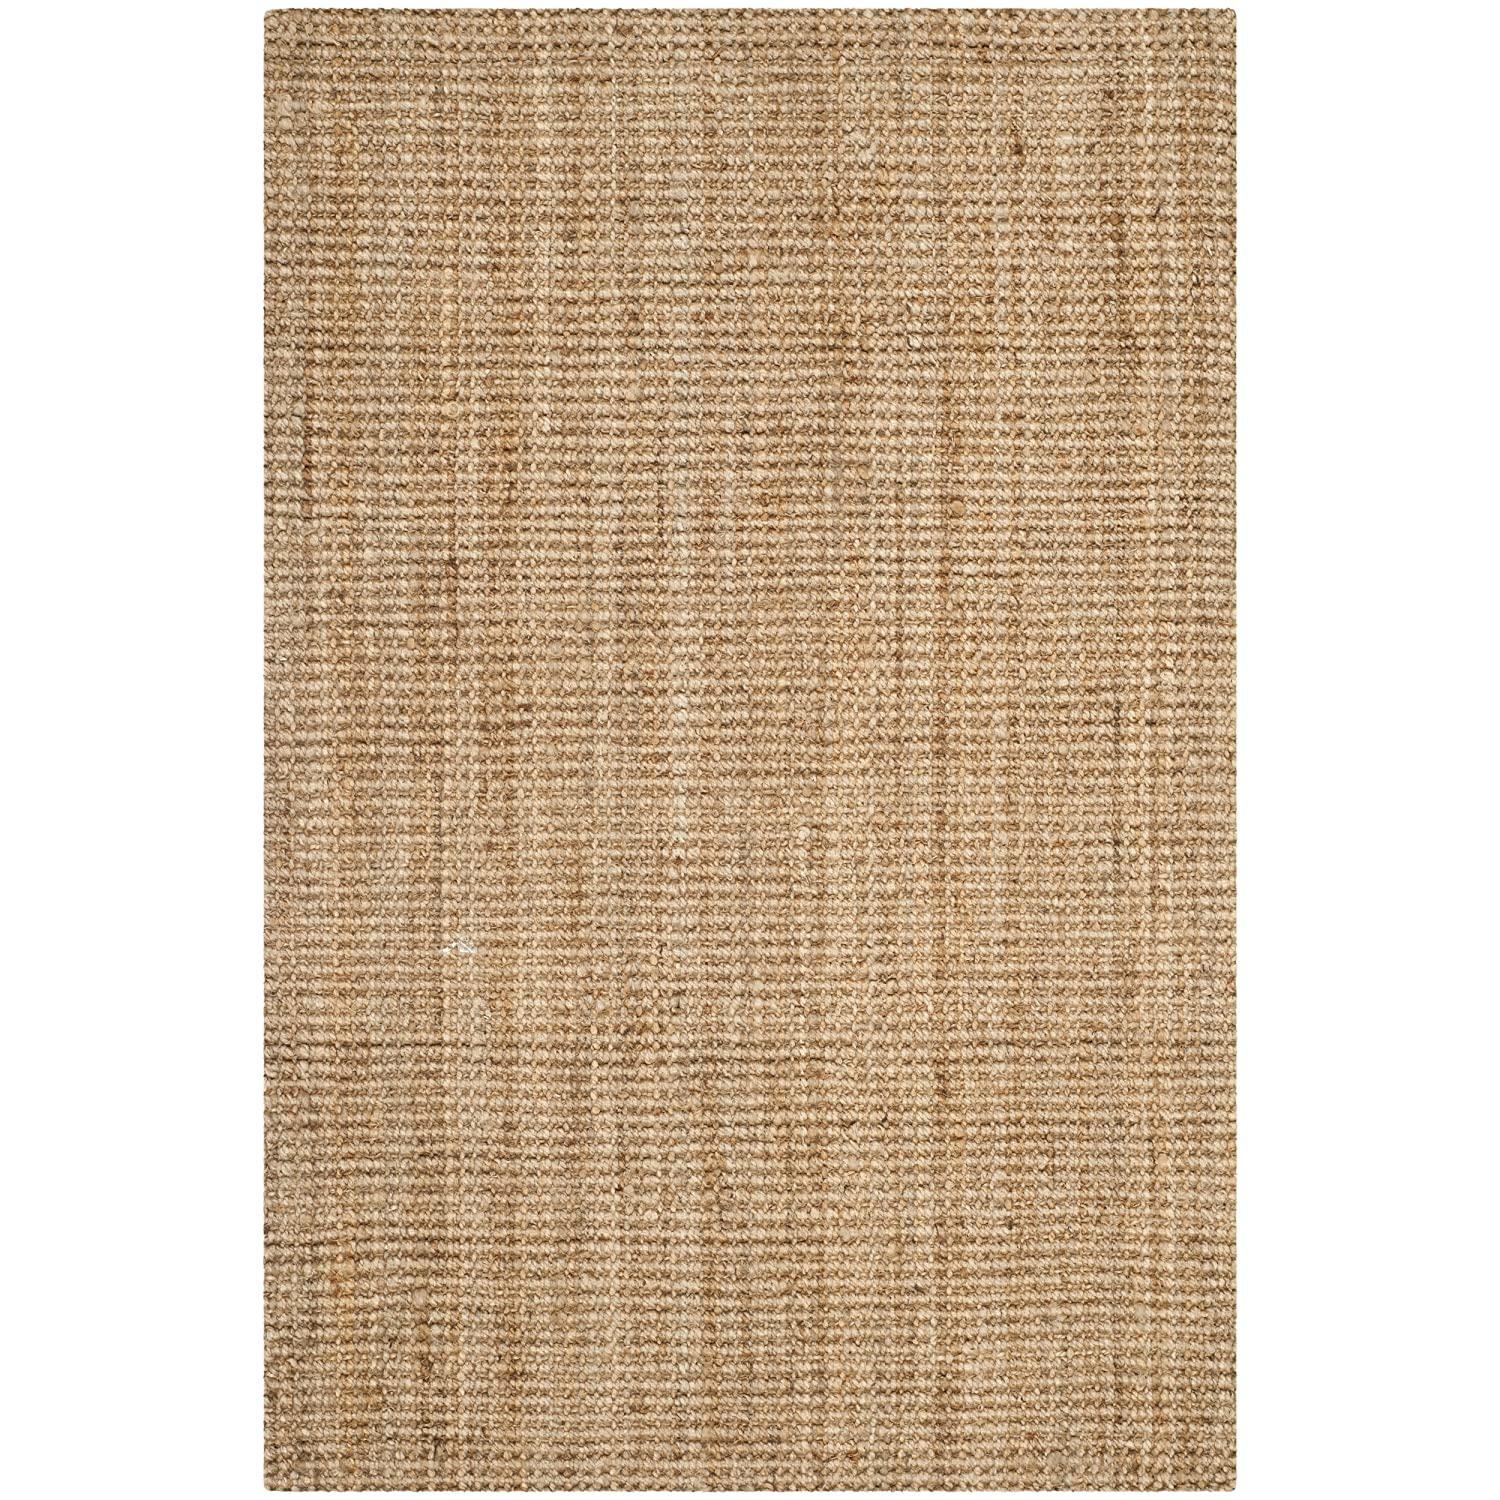 Safavieh Natural Fiber Collection NF747A Hand Woven Natural Jute Area Rug (2